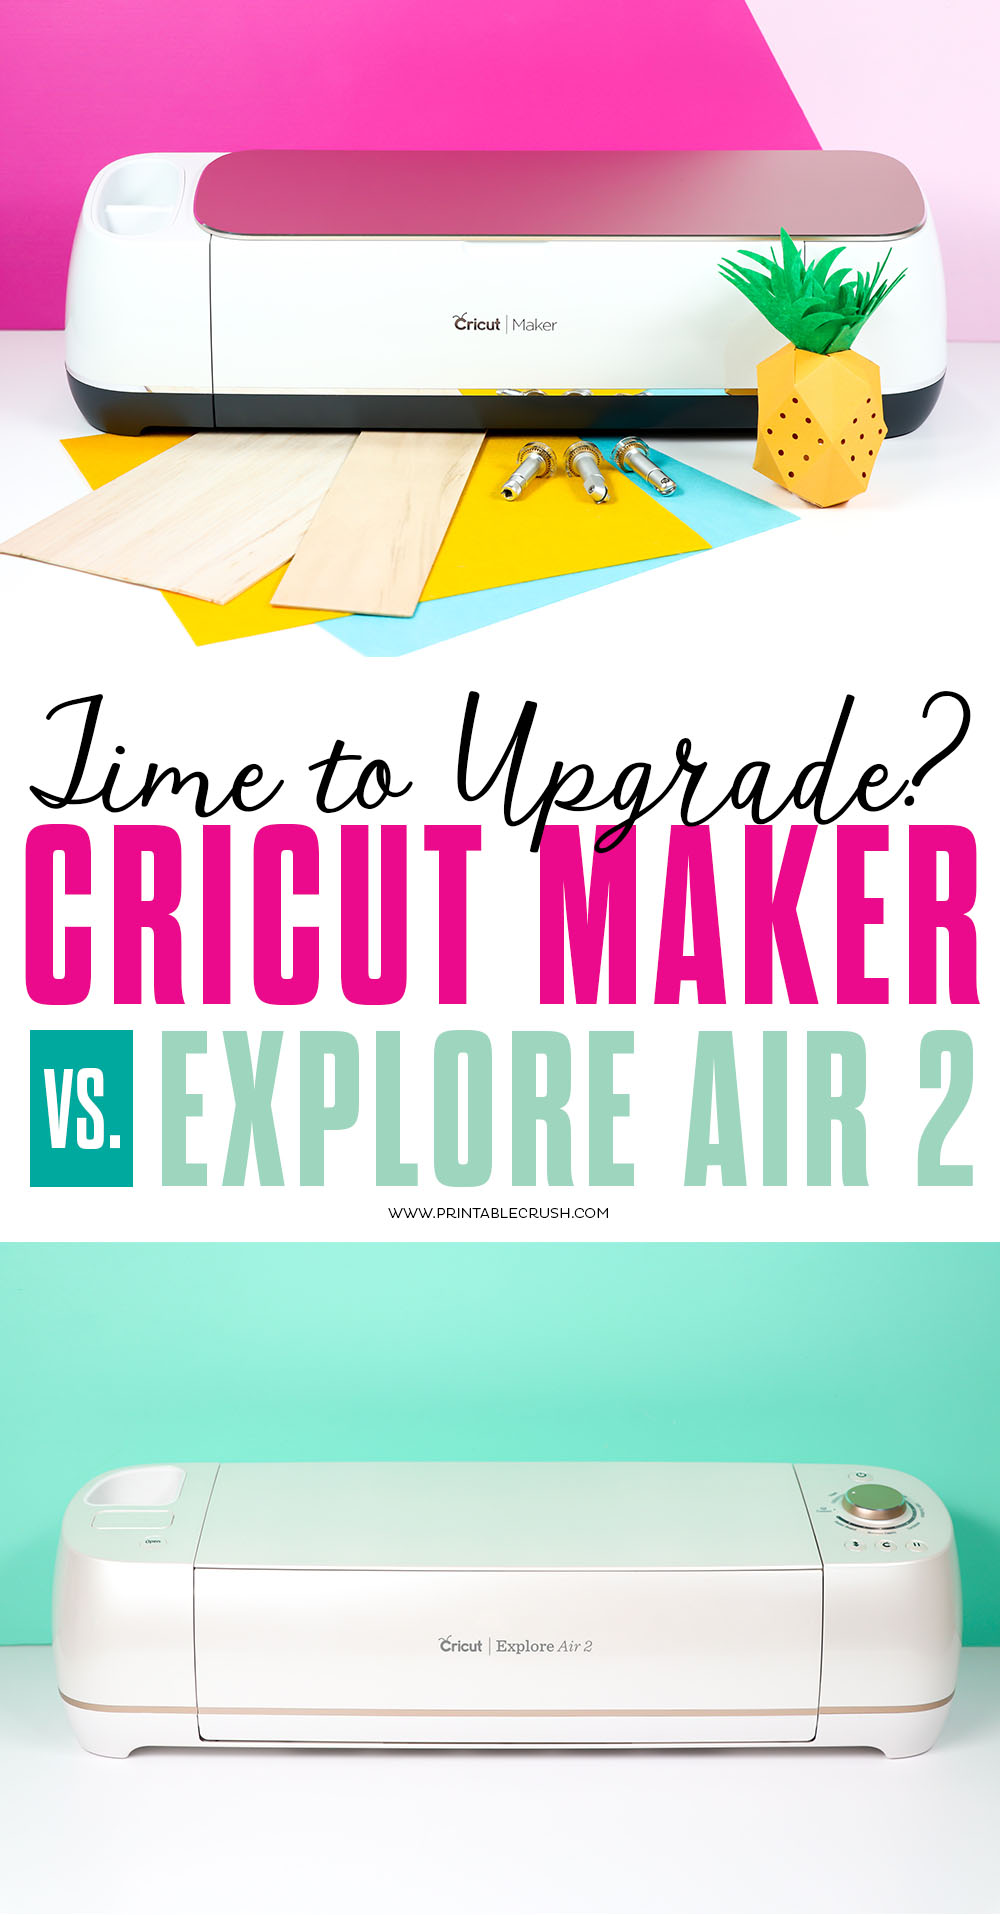 You may need to Upgrade from the Cricut Explore Air to the Cricut Maker